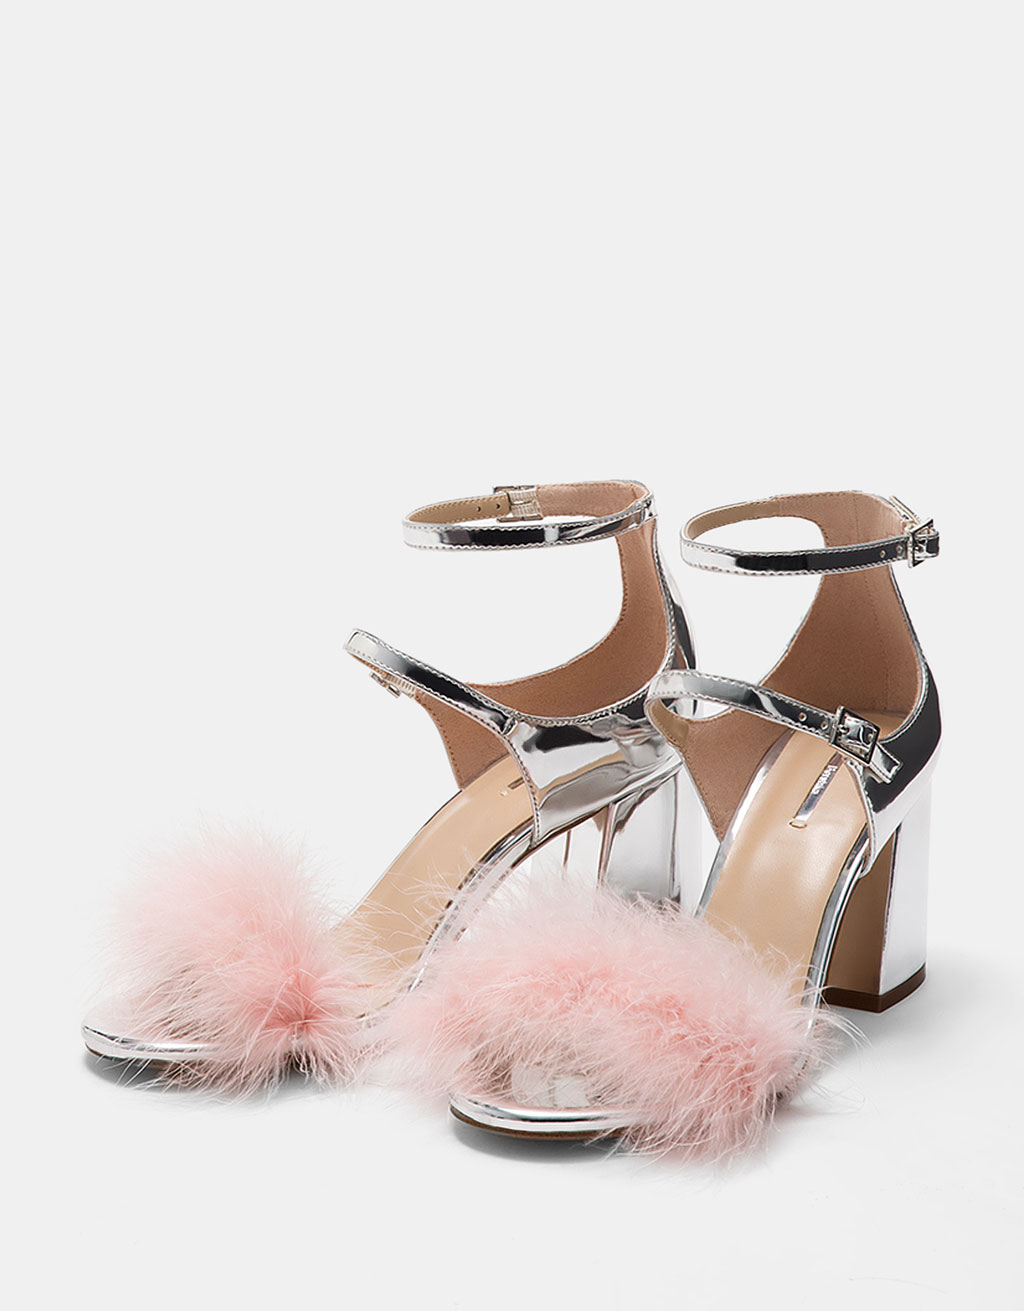 Metallic mid-heel sandals with feathers